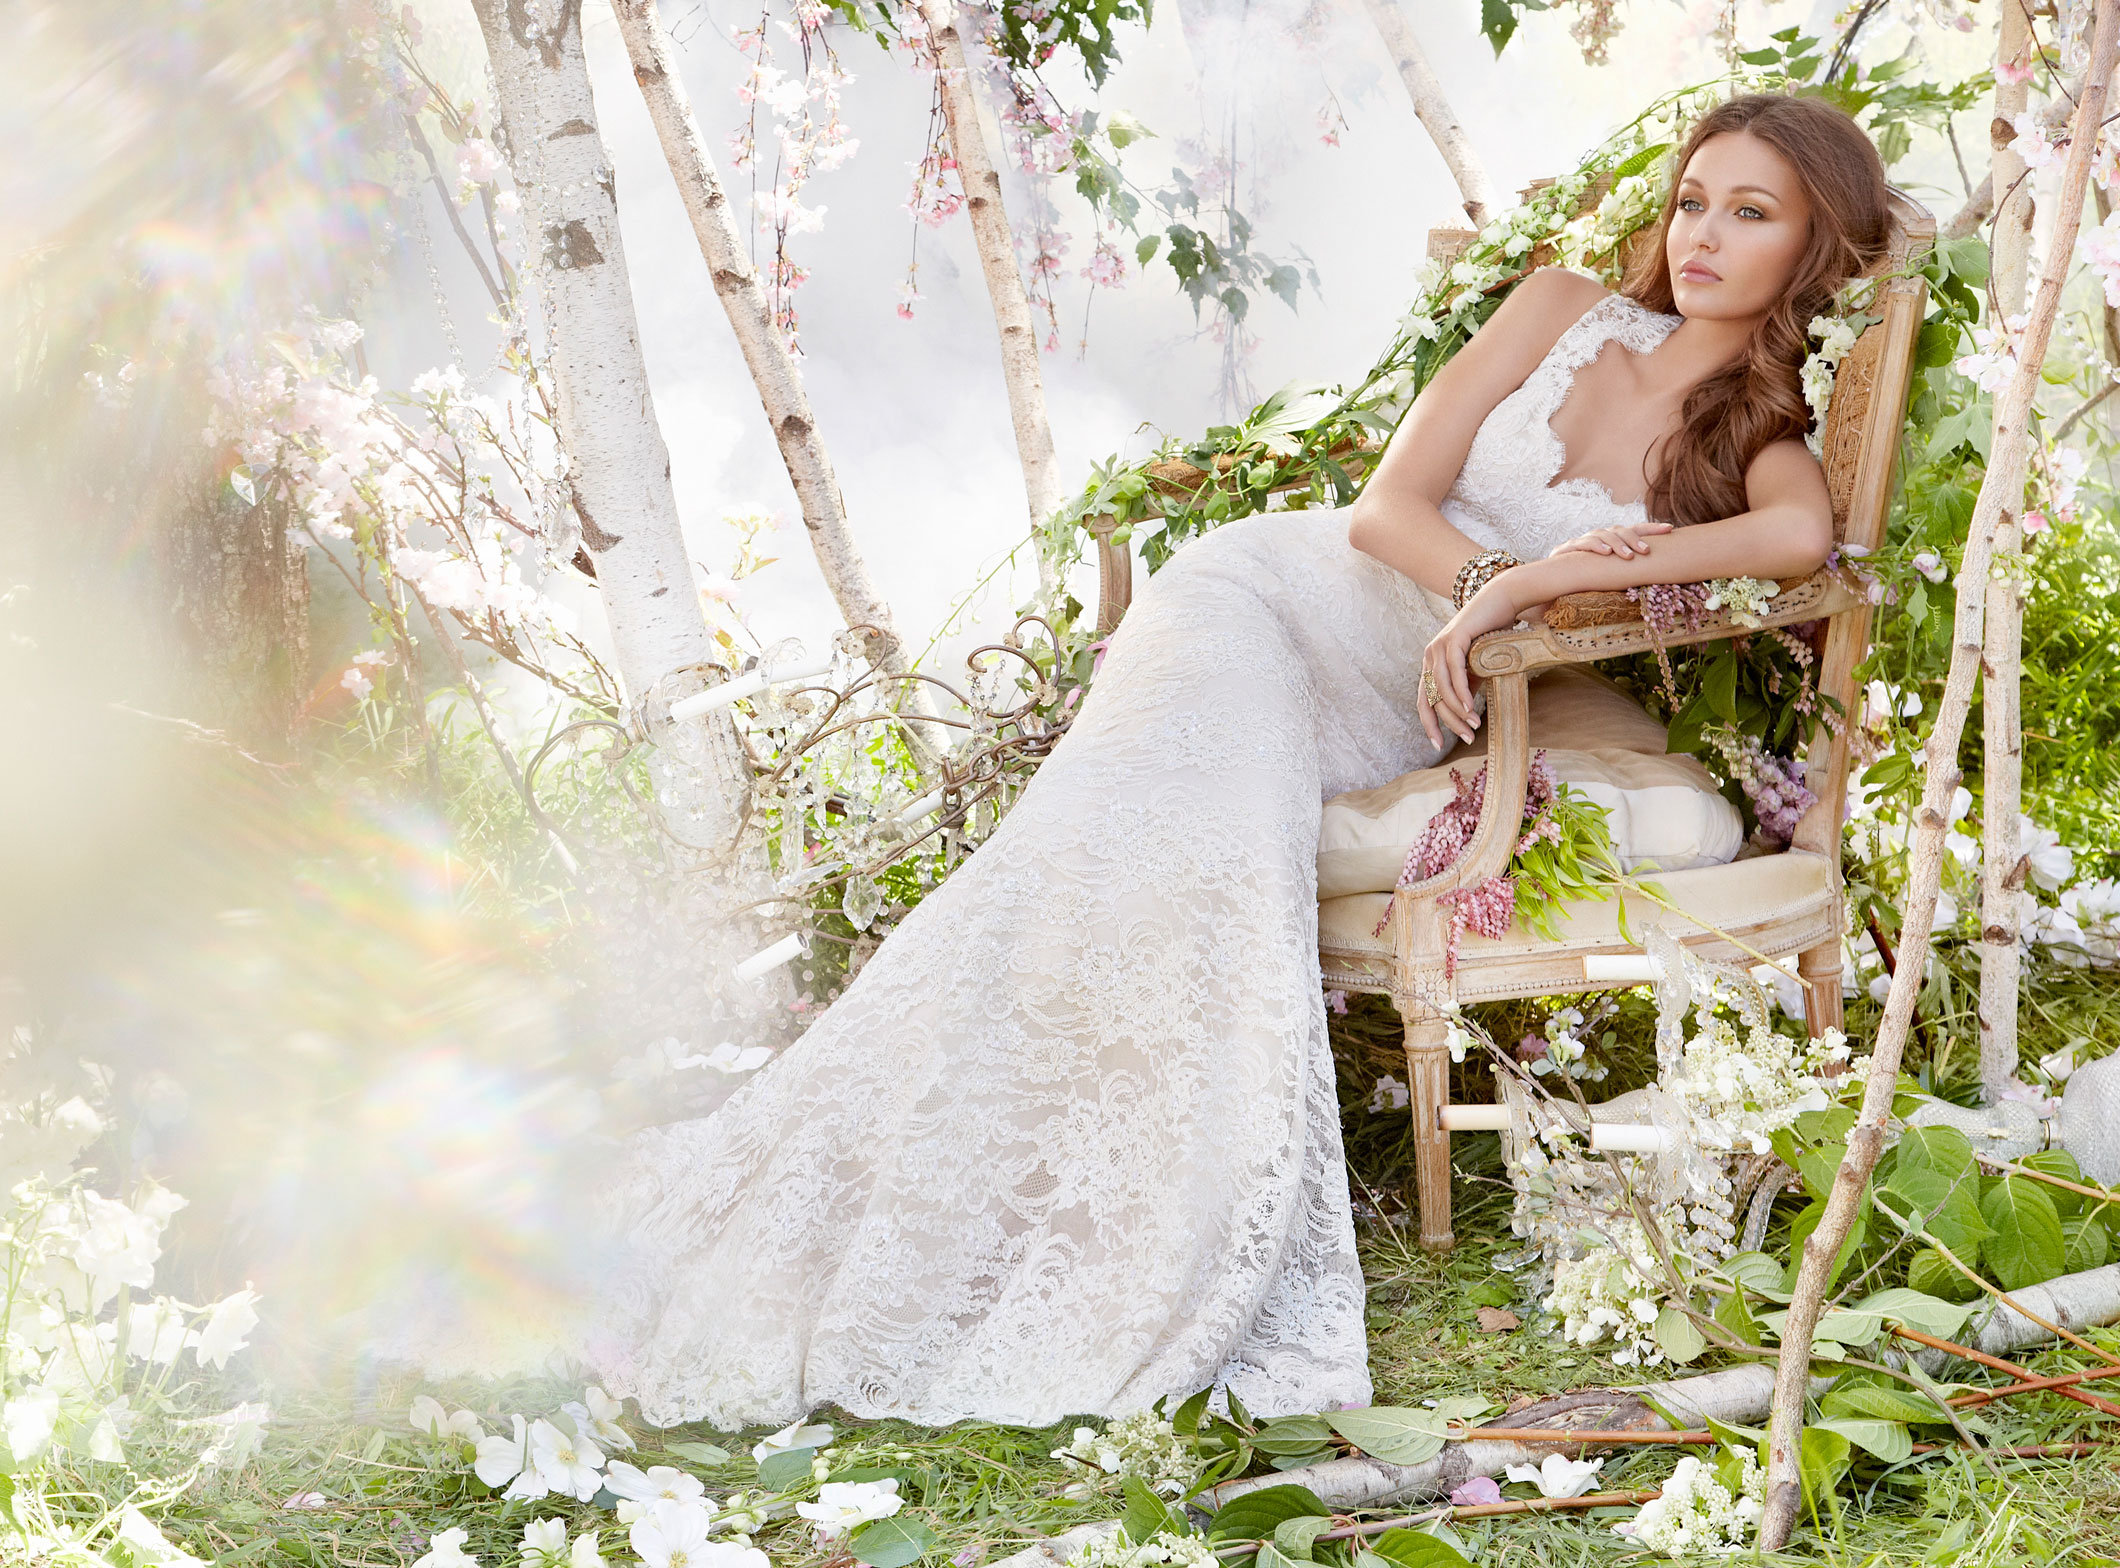 A Line Wedding Dress: Bridal Gowns And Wedding Dresses By JLM Couture